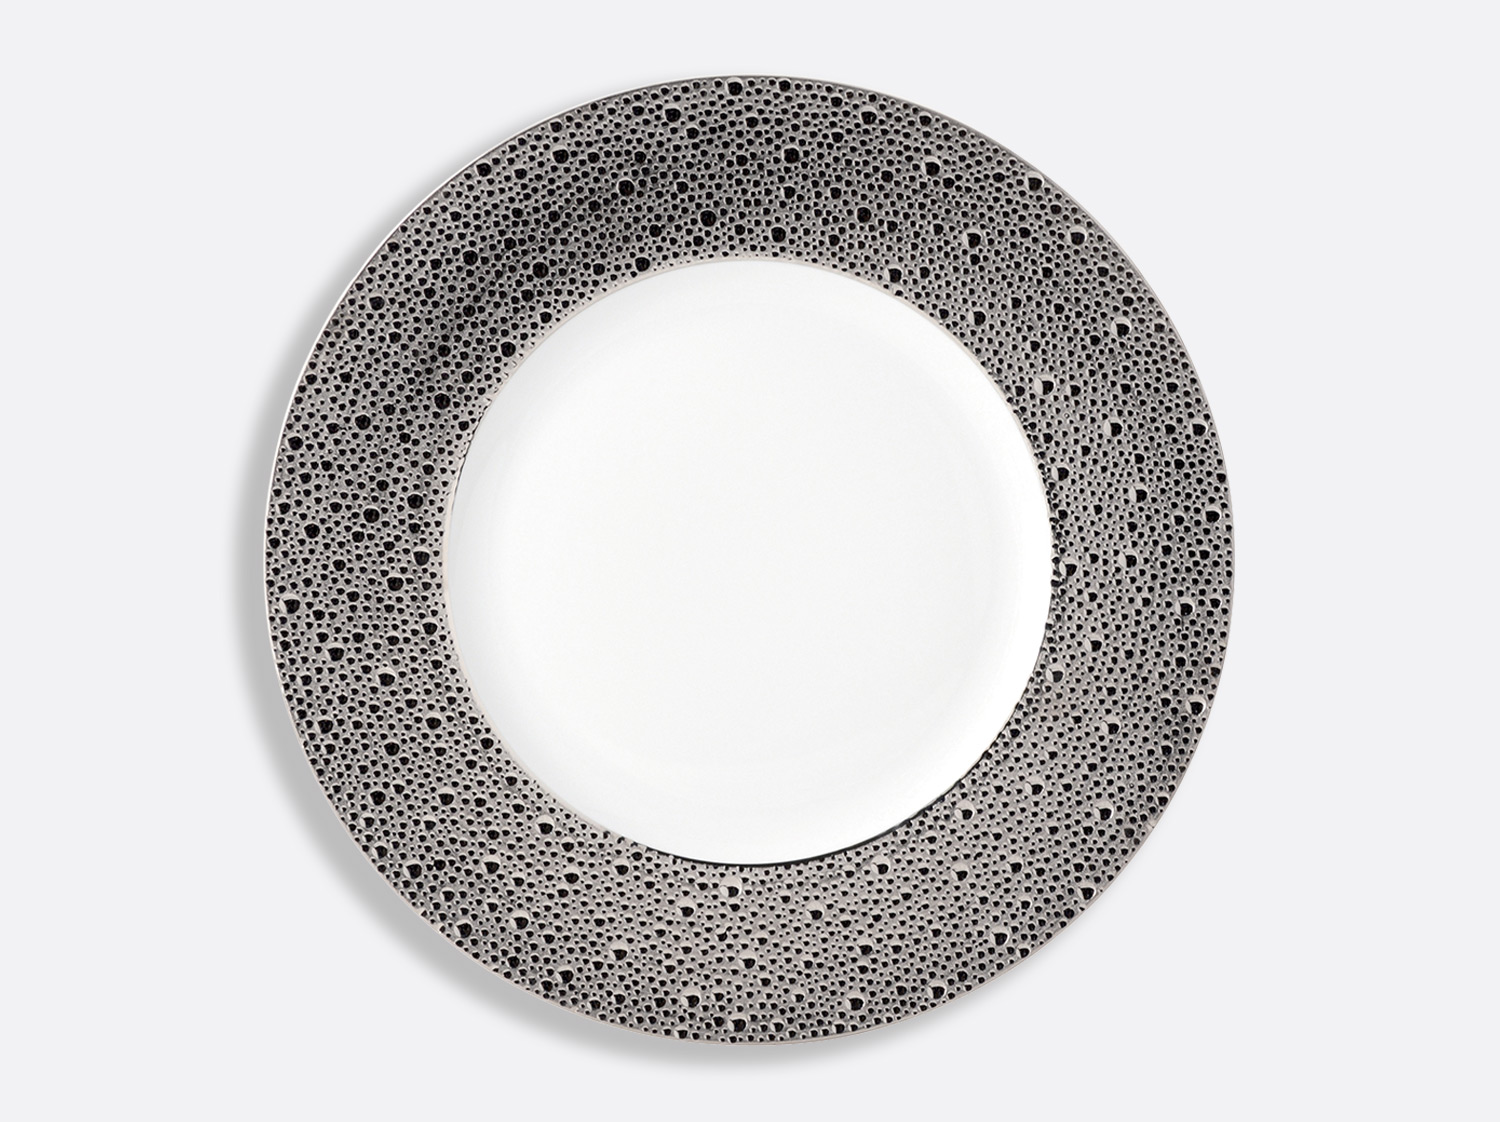 China サービスプレート31.5cm of the collection Ecume platine | Bernardaud